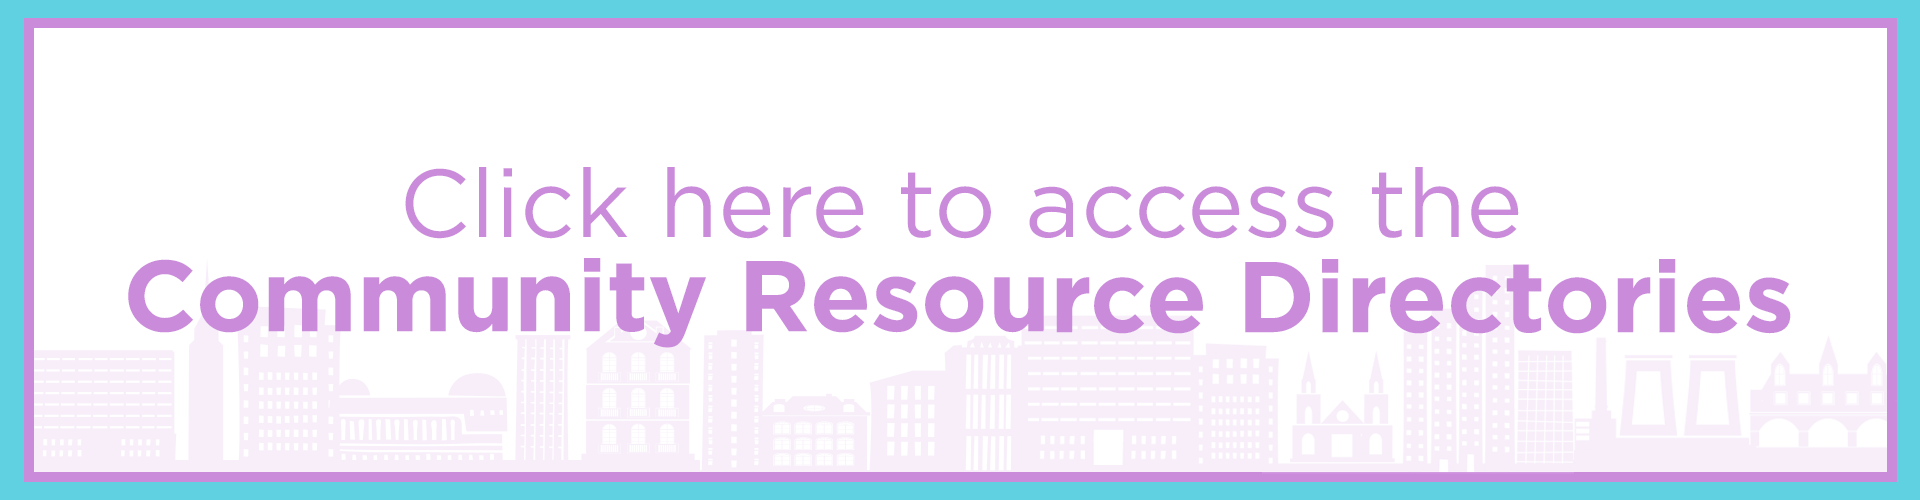 ?Click here to access the Community Resource Directories???